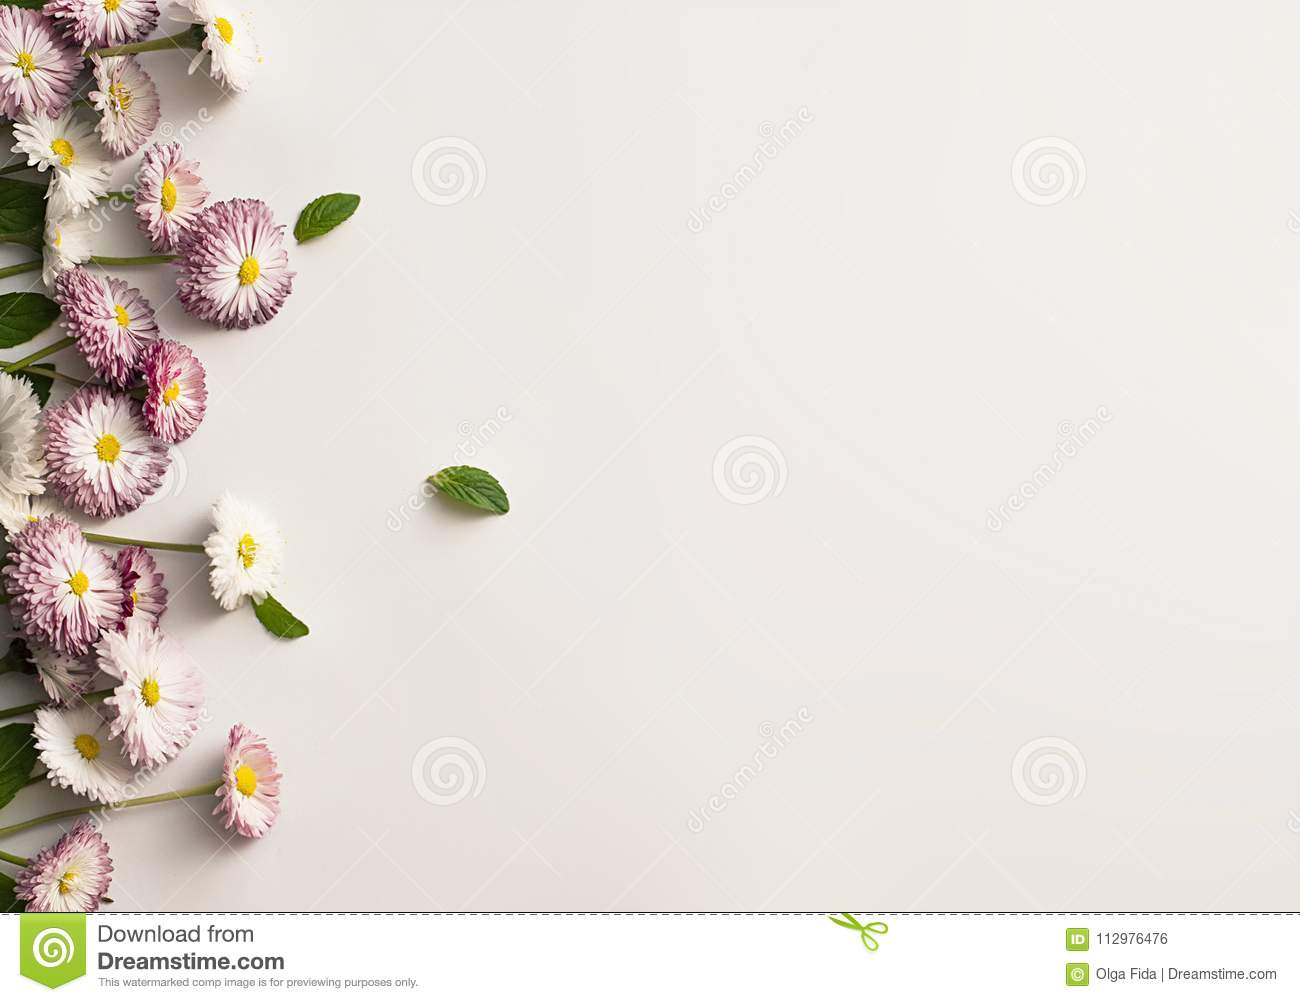 Frame of white and pink daisies